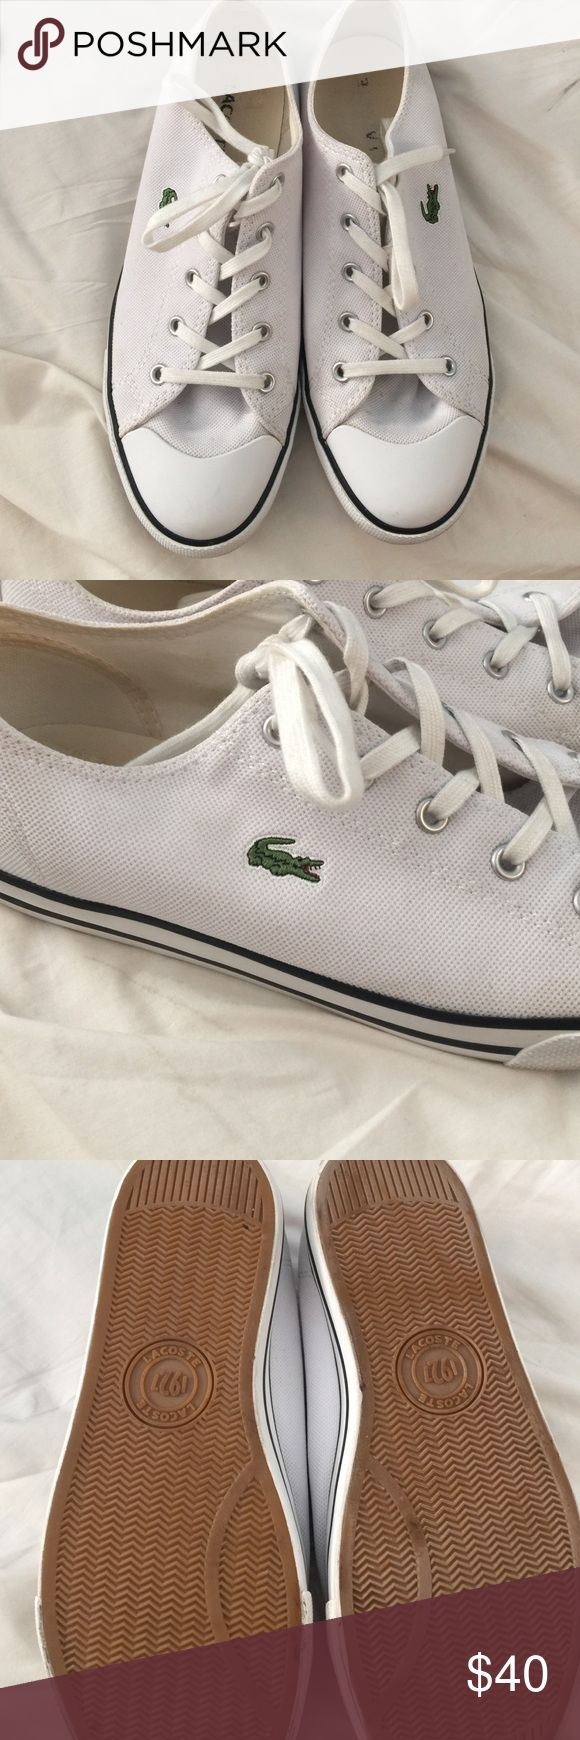 Lacoste Sneakers White Converse style Lacoste Sneakers with side logo. Preloved but still lots of life left. Lacoste Shoes Sneakers